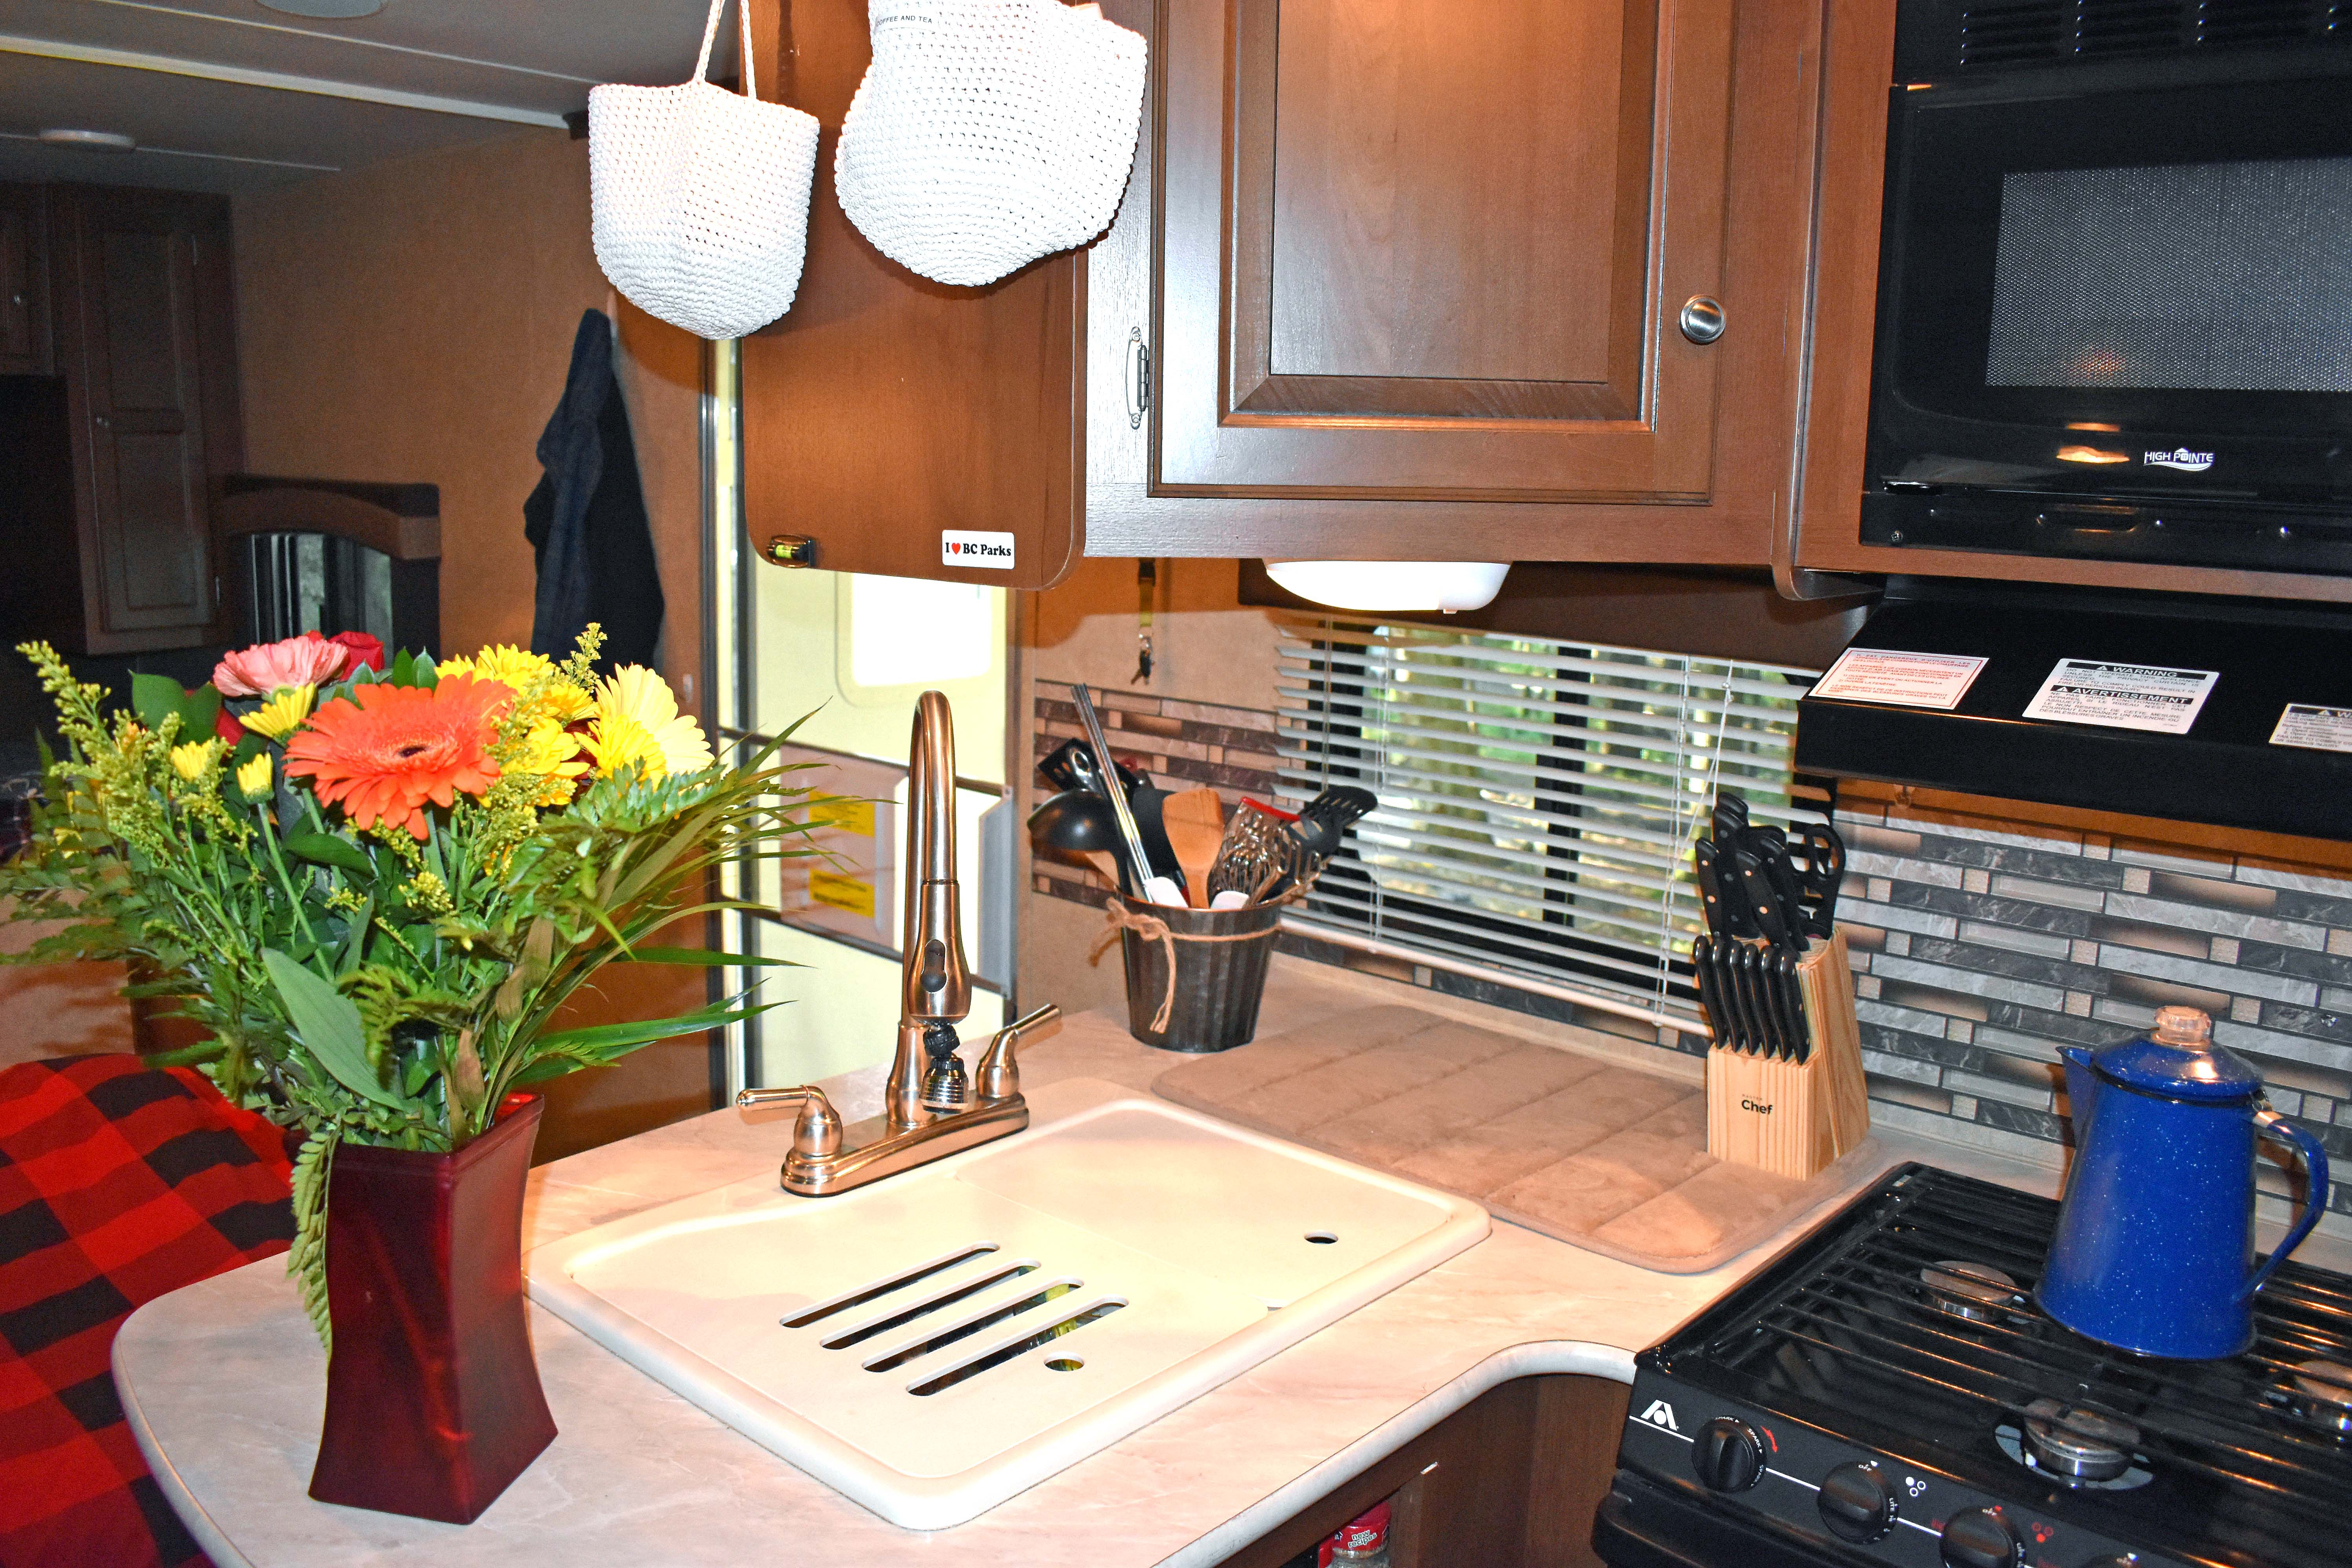 Full kitchen with large sink, 3 burner stove, microwave, small oven, mid-size fridge an freezer. Jayco Jay Flight 2014